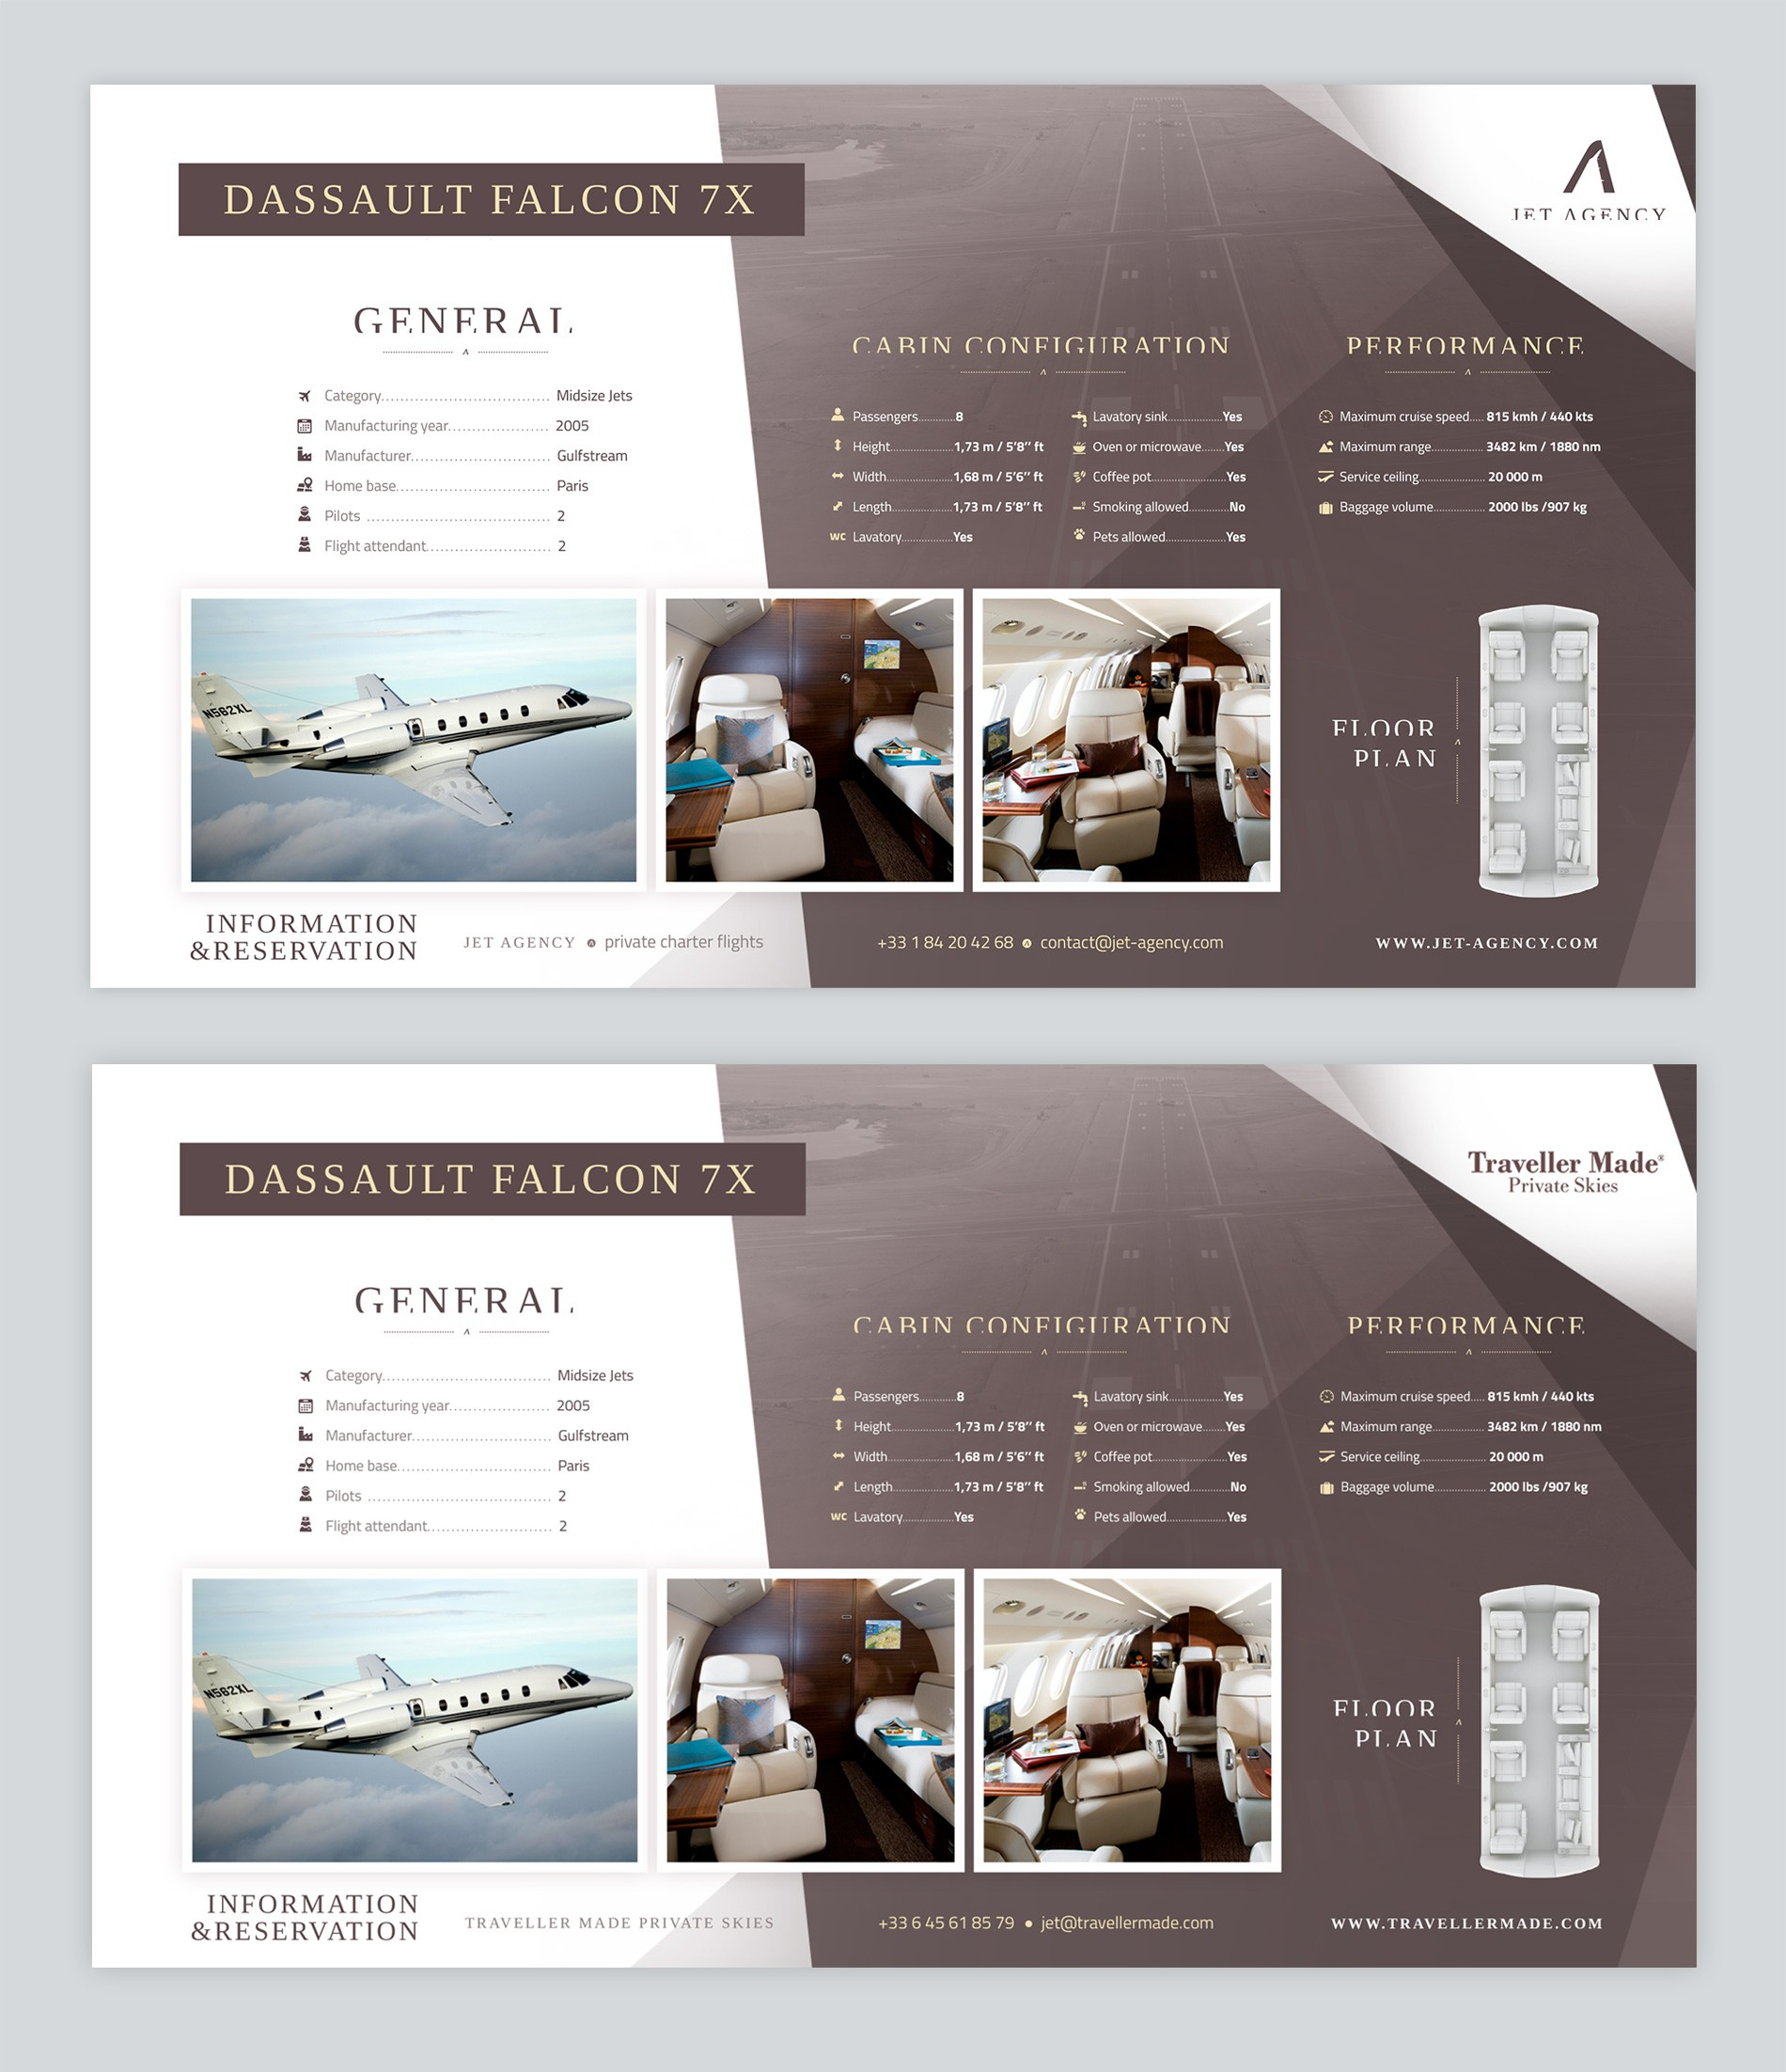 New private jets presentation for Jet Agency! .ppt or .doc template